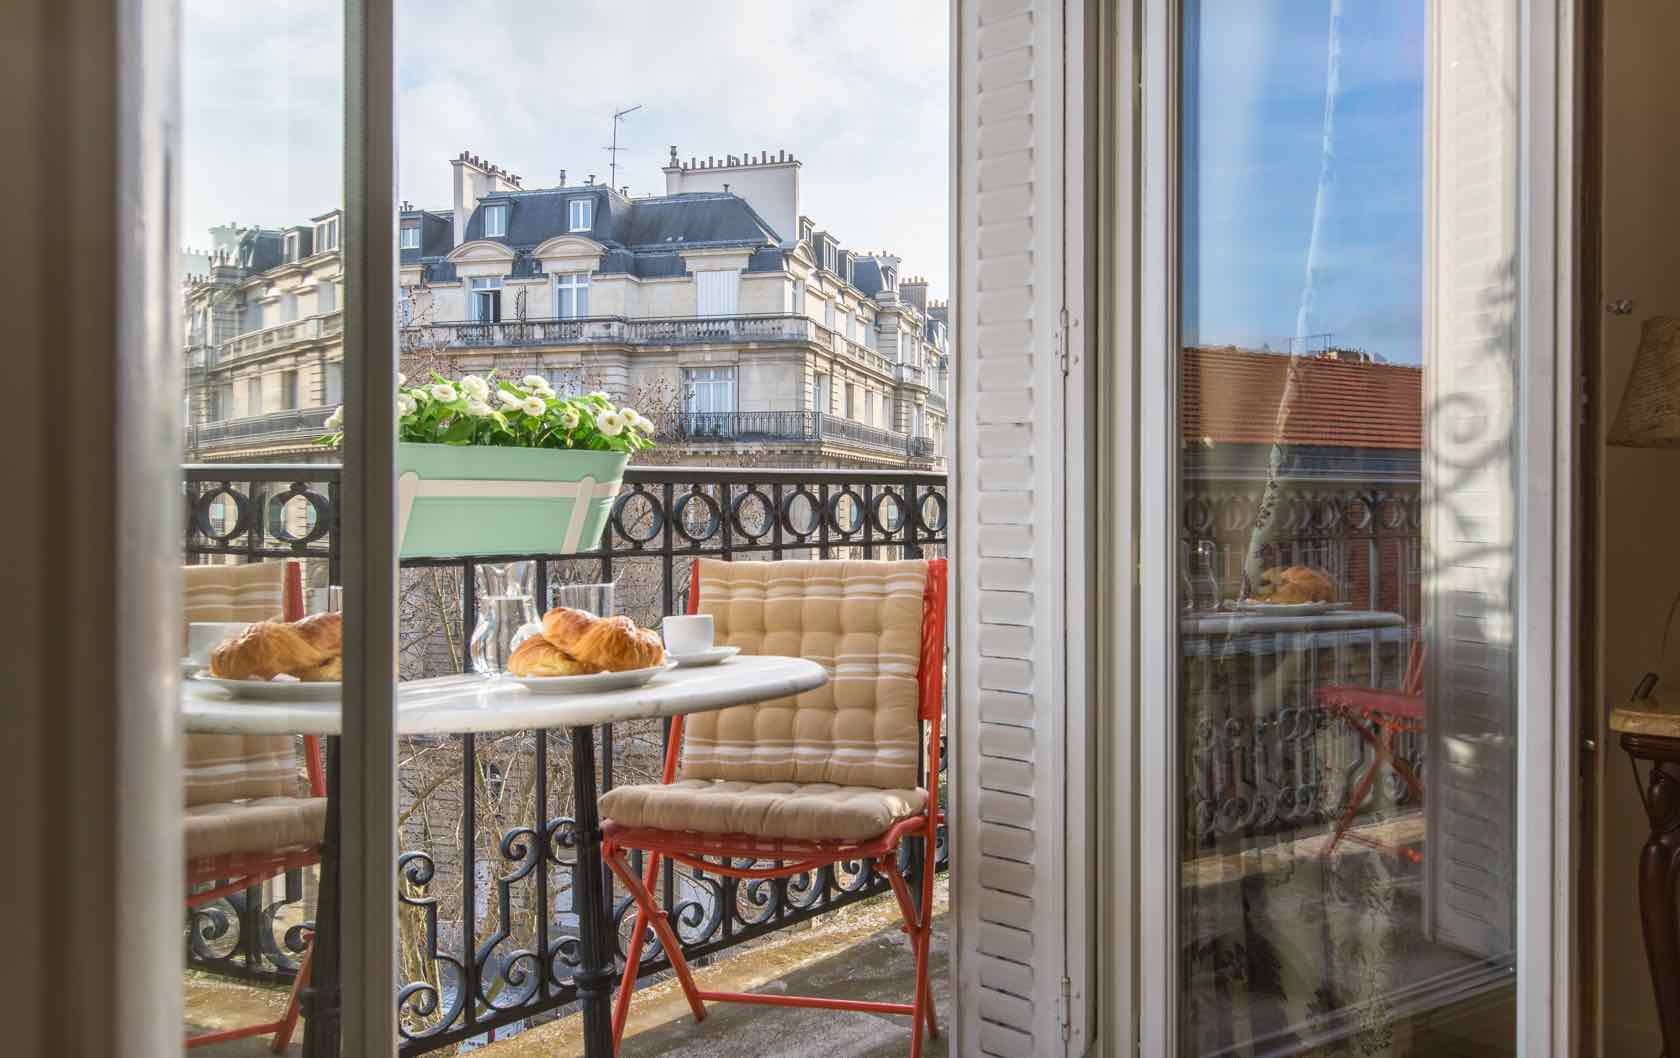 Staying a Month or Longer? See our Long-Term Furnished Rentals in Paris